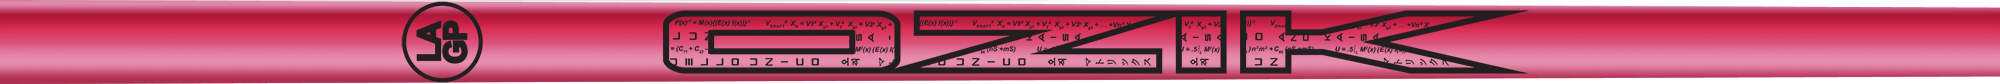 Ozik White Tie: Neon Pink Black Gloss - Wood 40 A